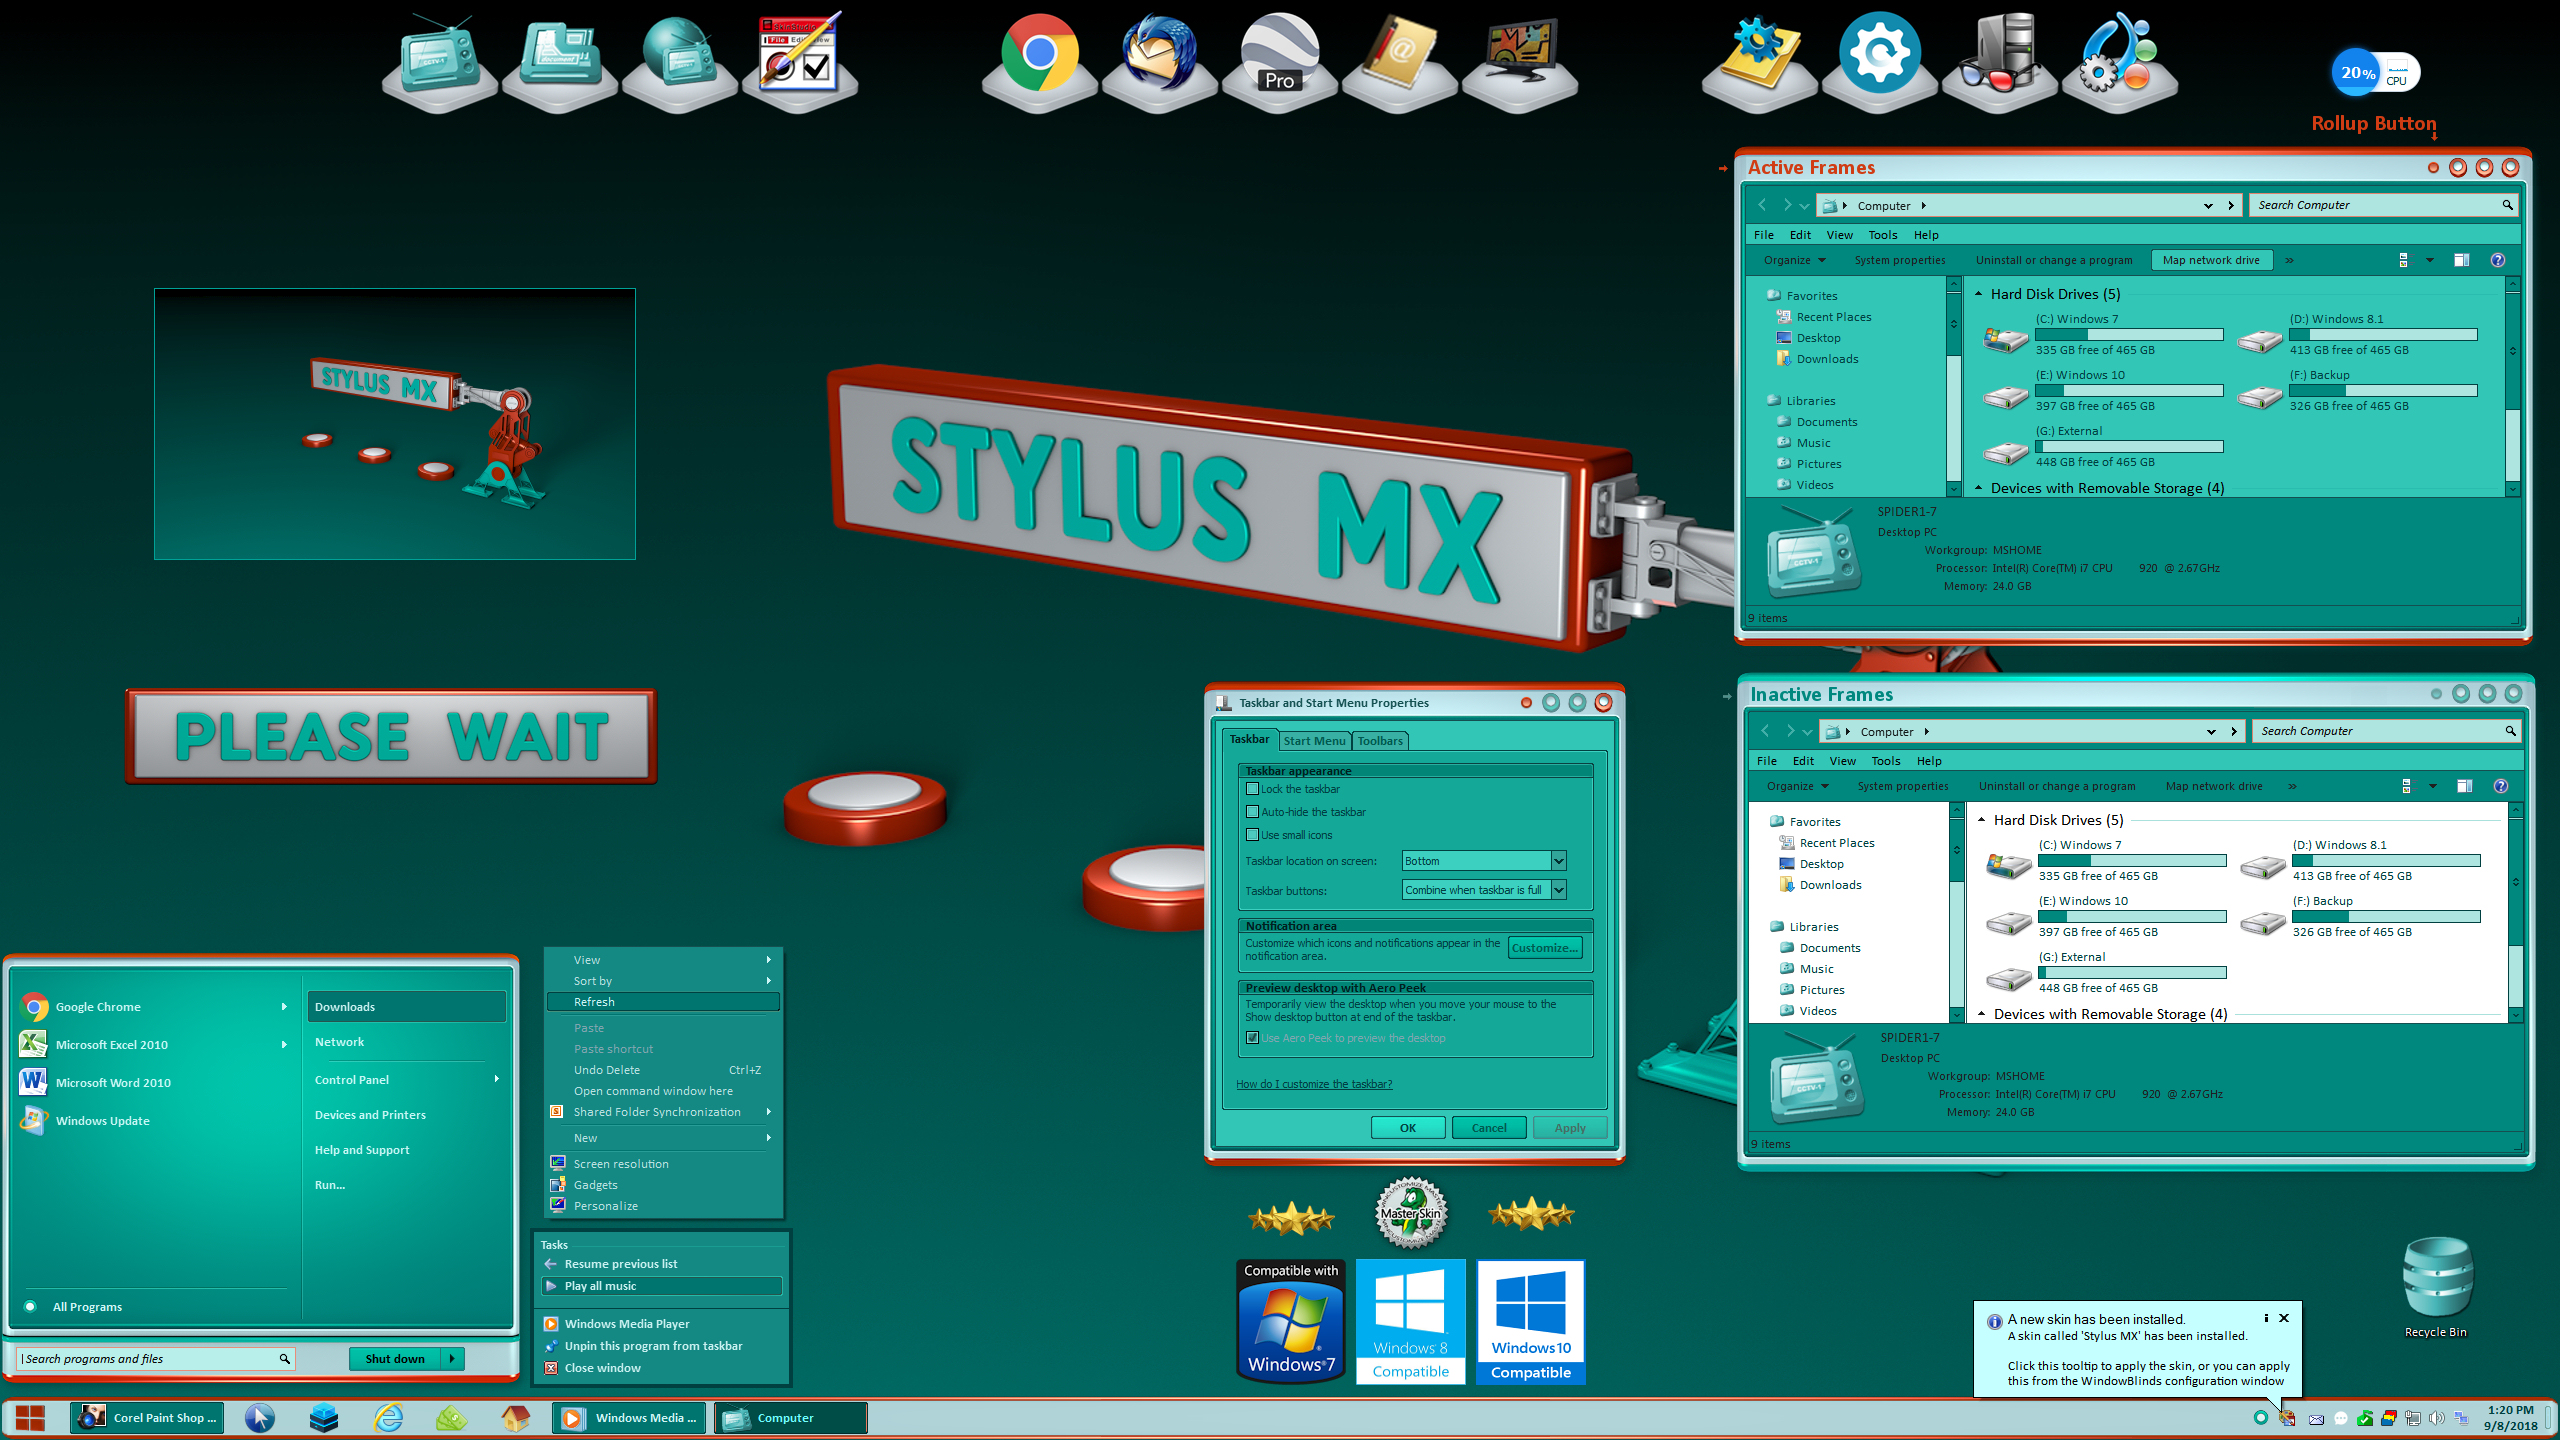 Stylus MX for Windowblinds